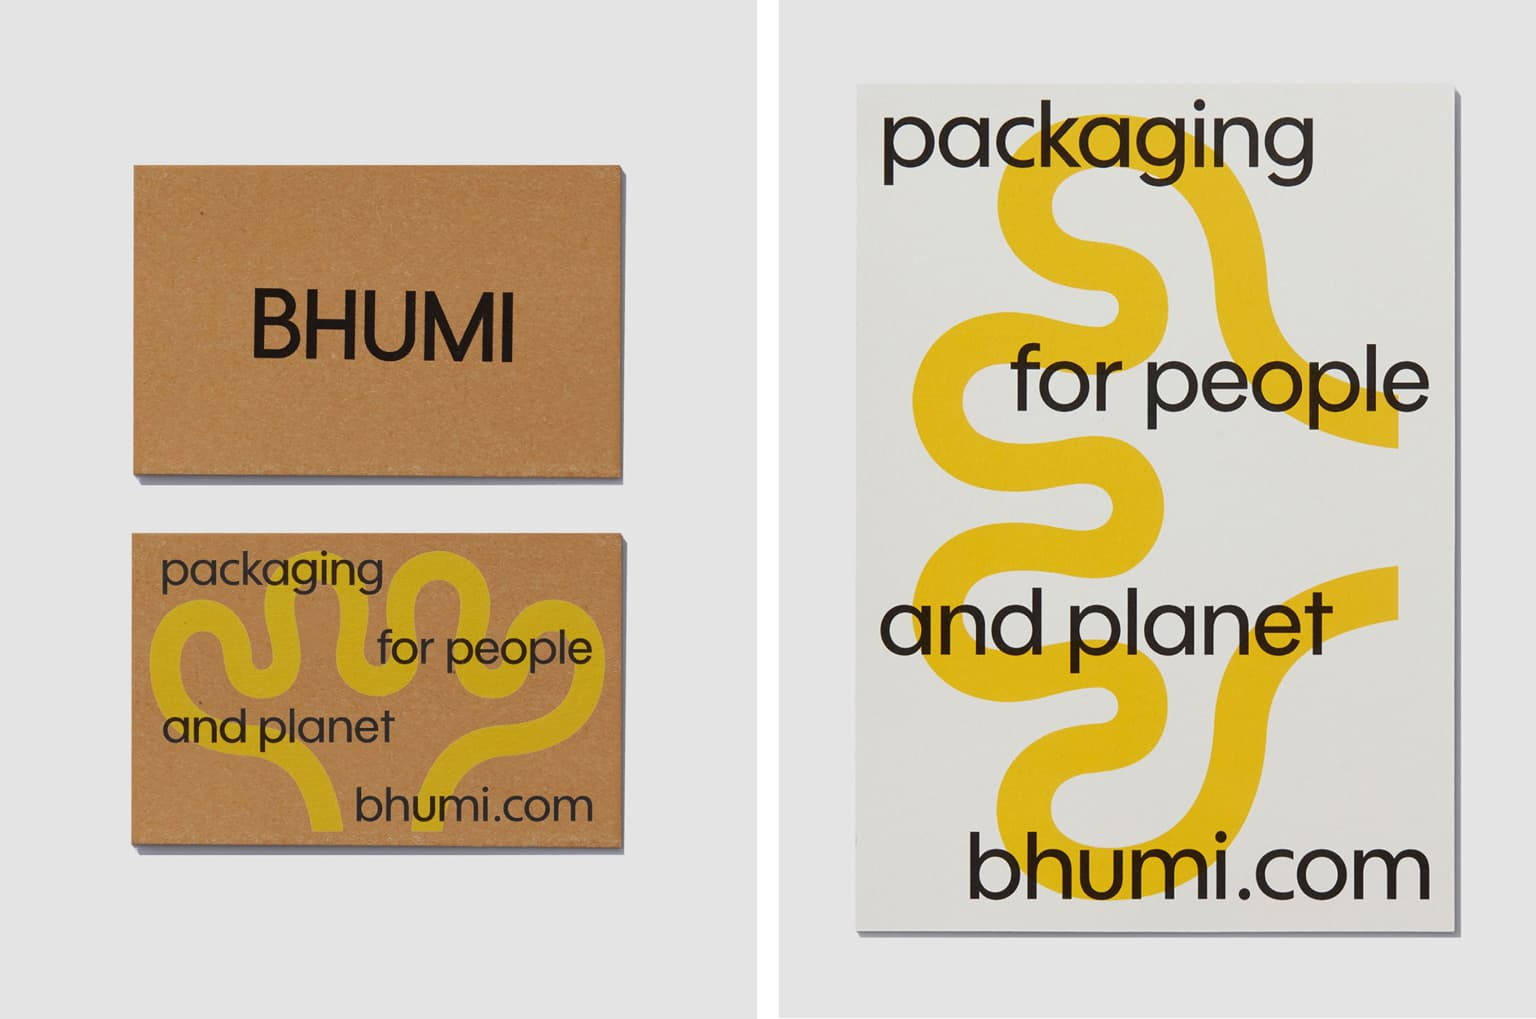 A brand for people and planet